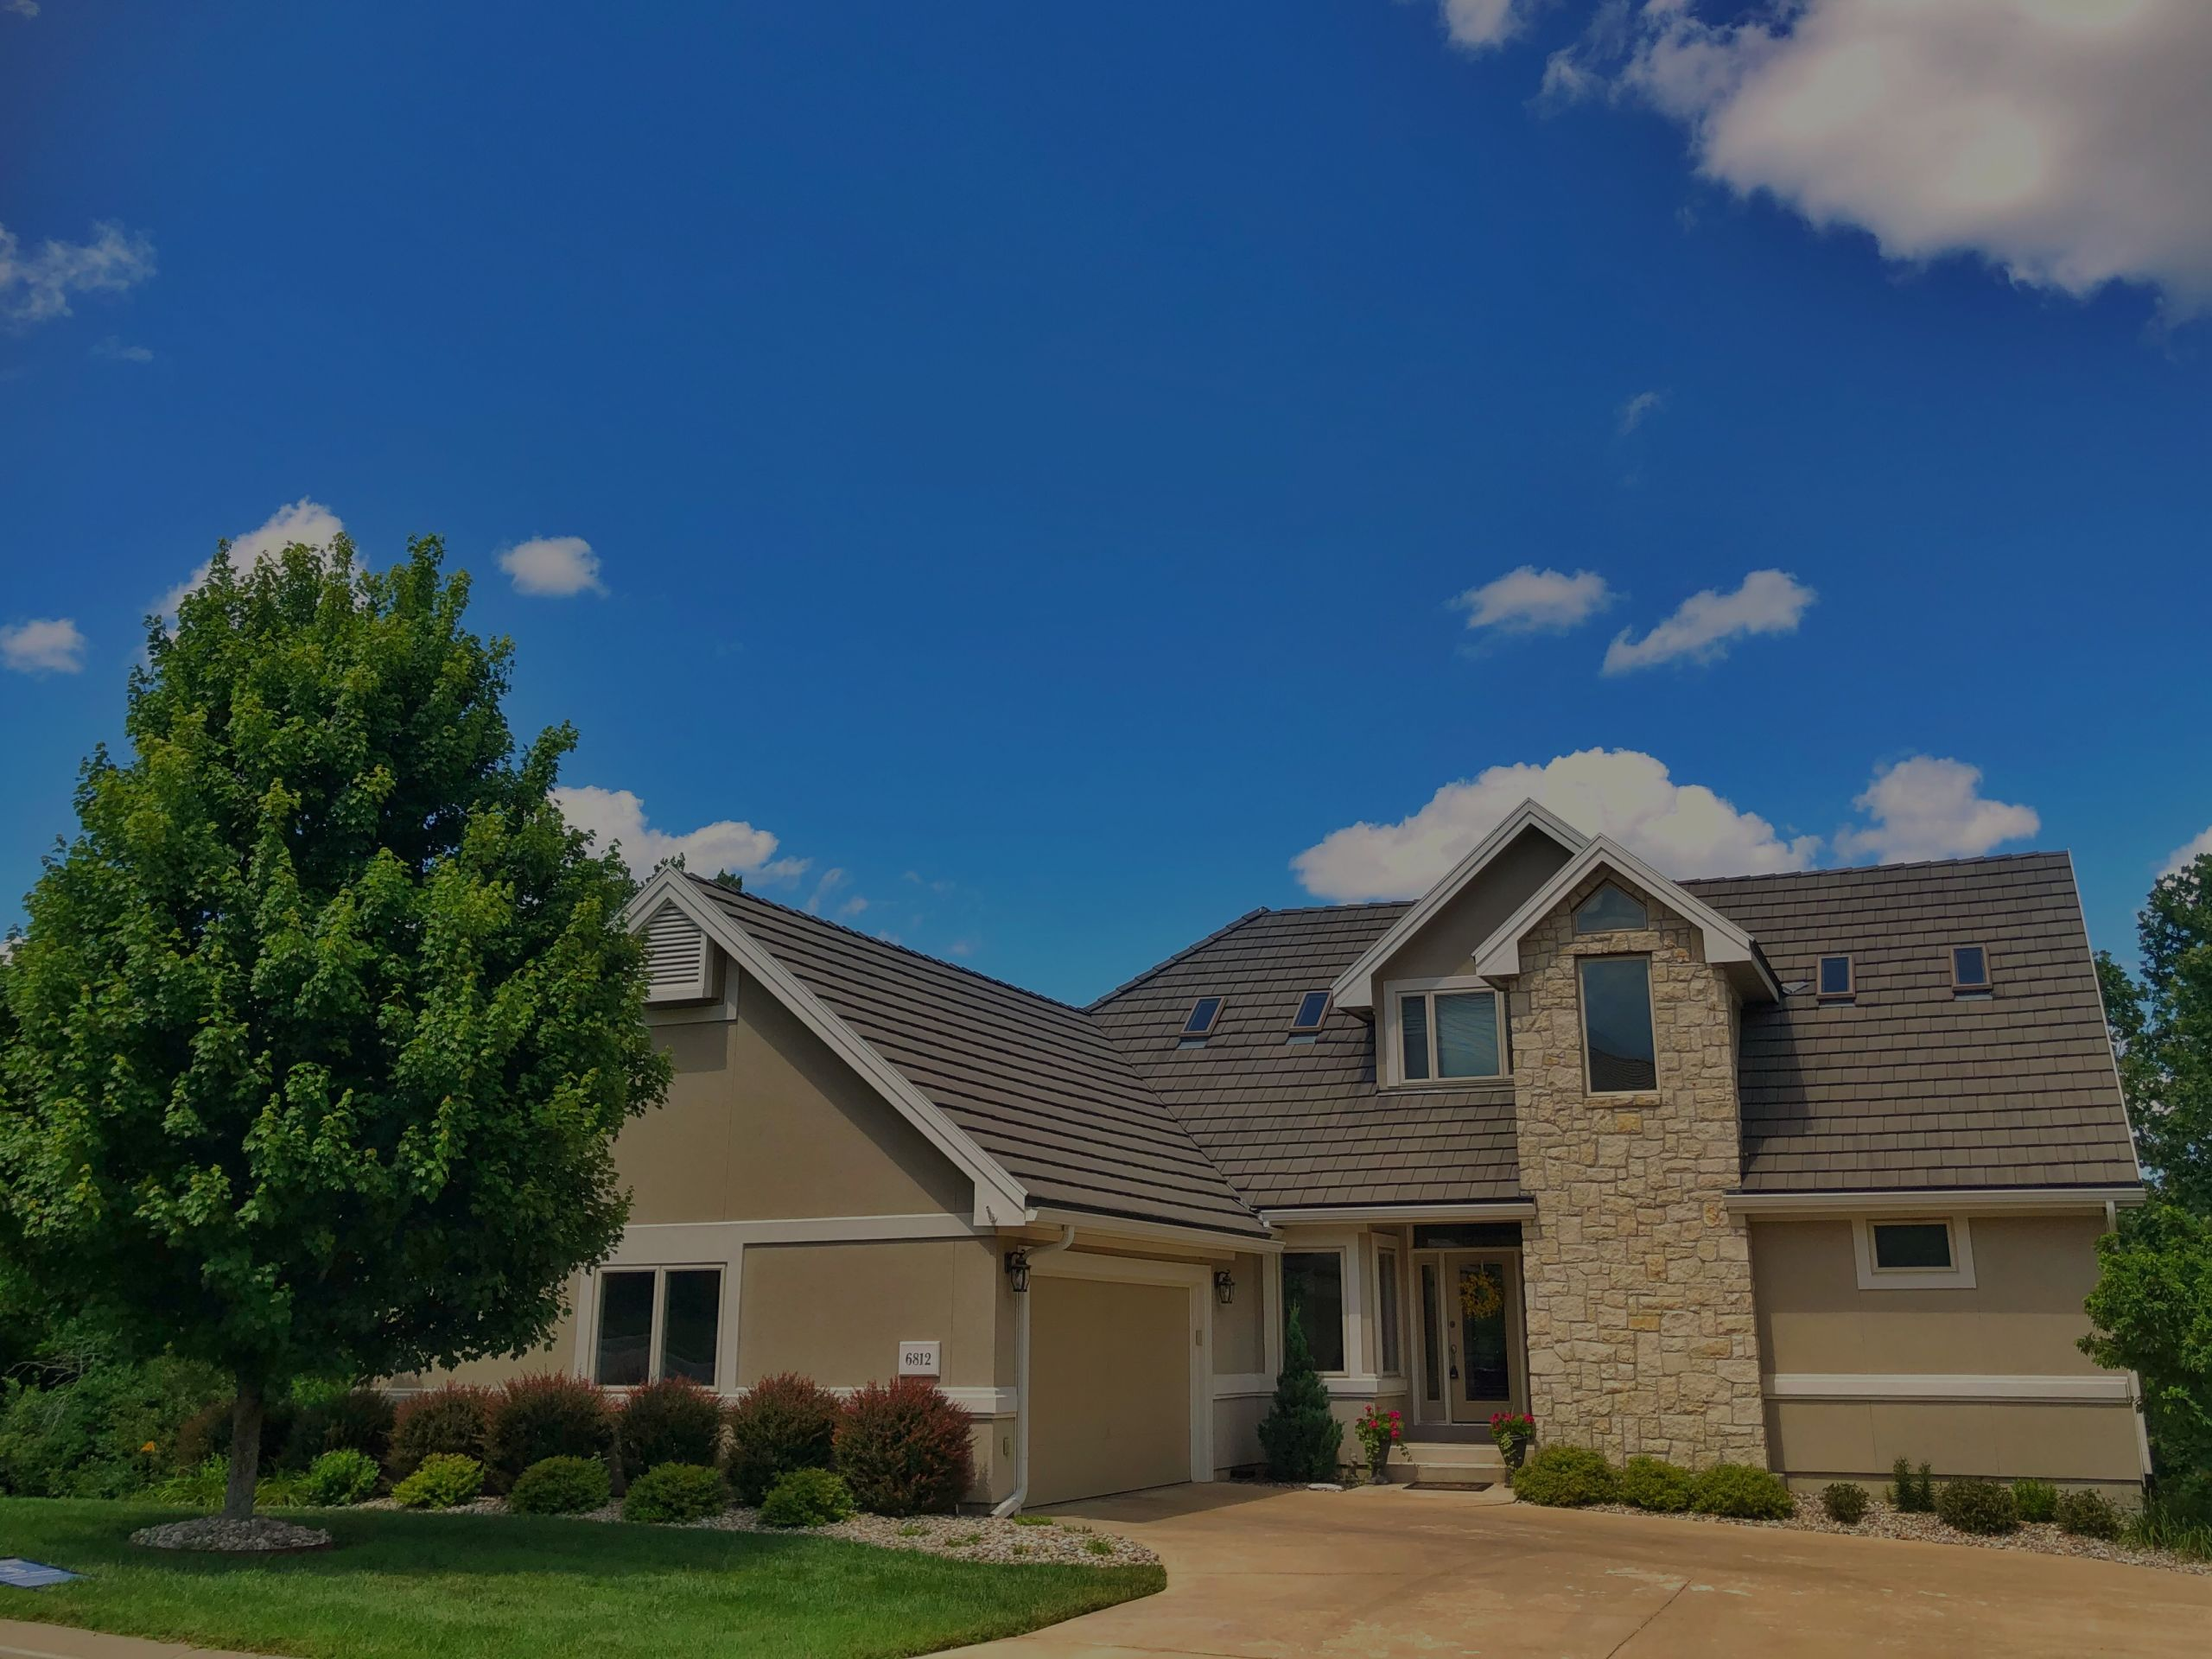 Saving Big When Selling a Home